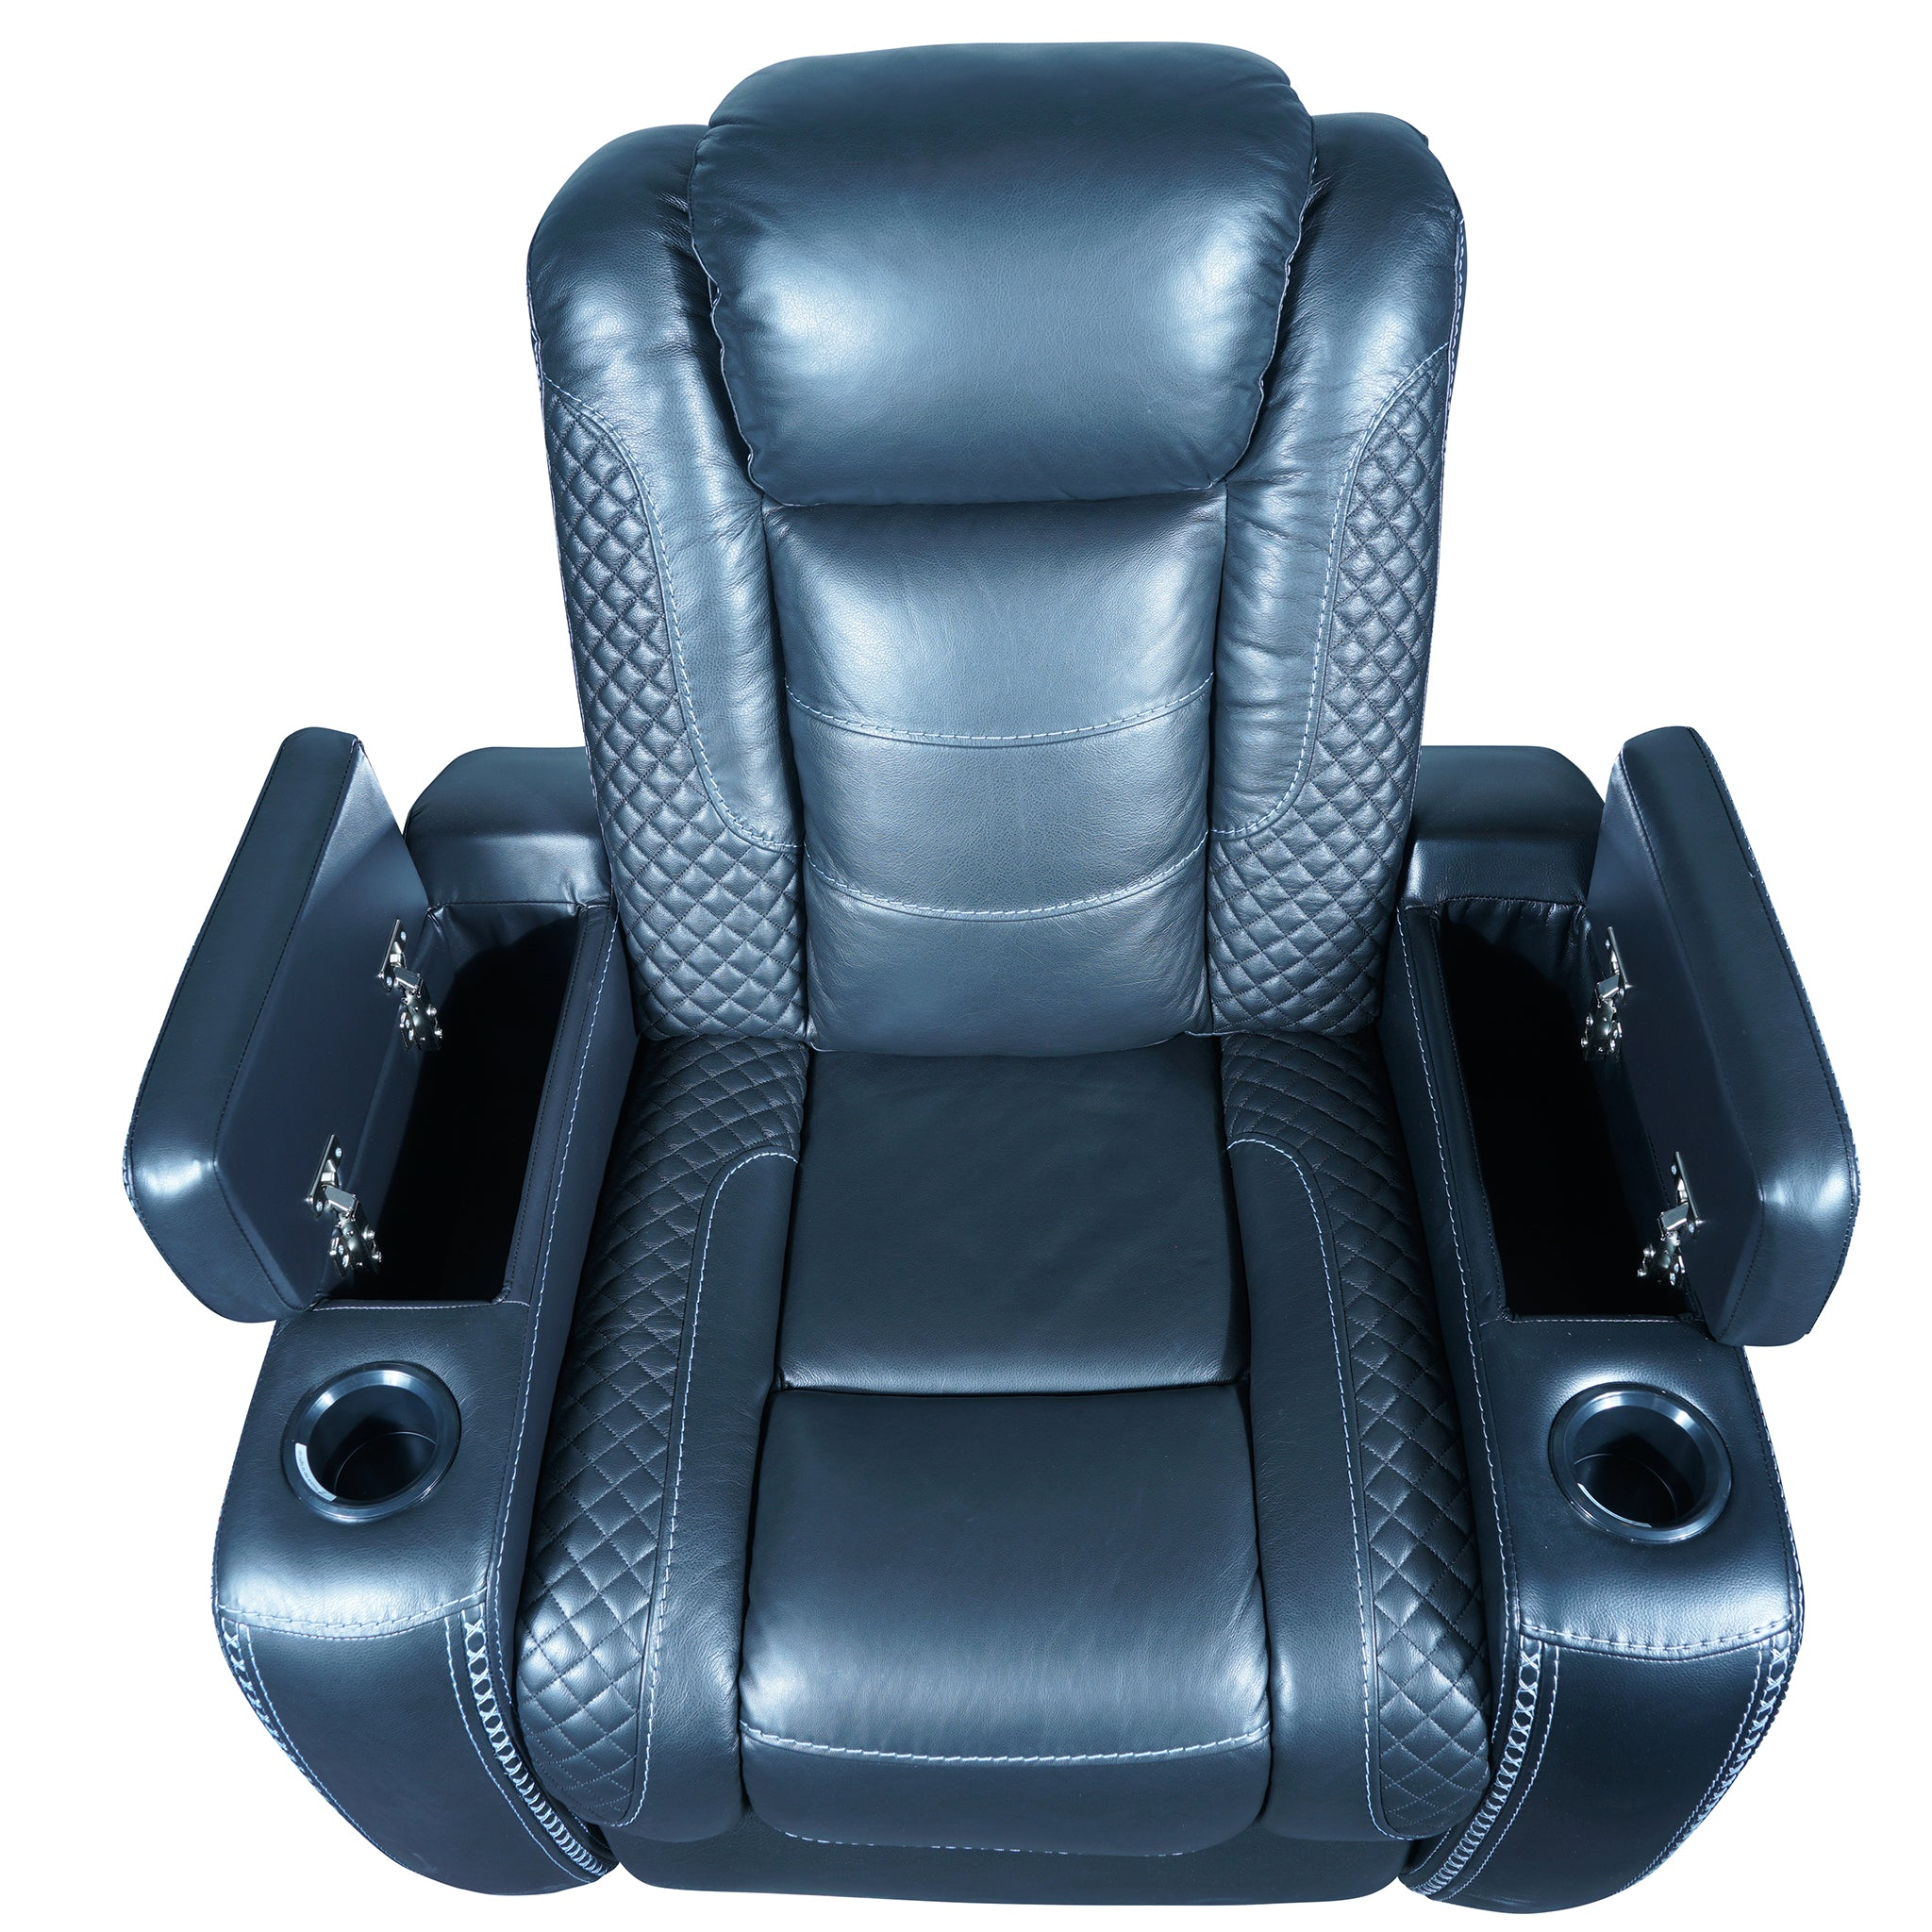 electric recliner armchair with handrest storage and 2 cup holder